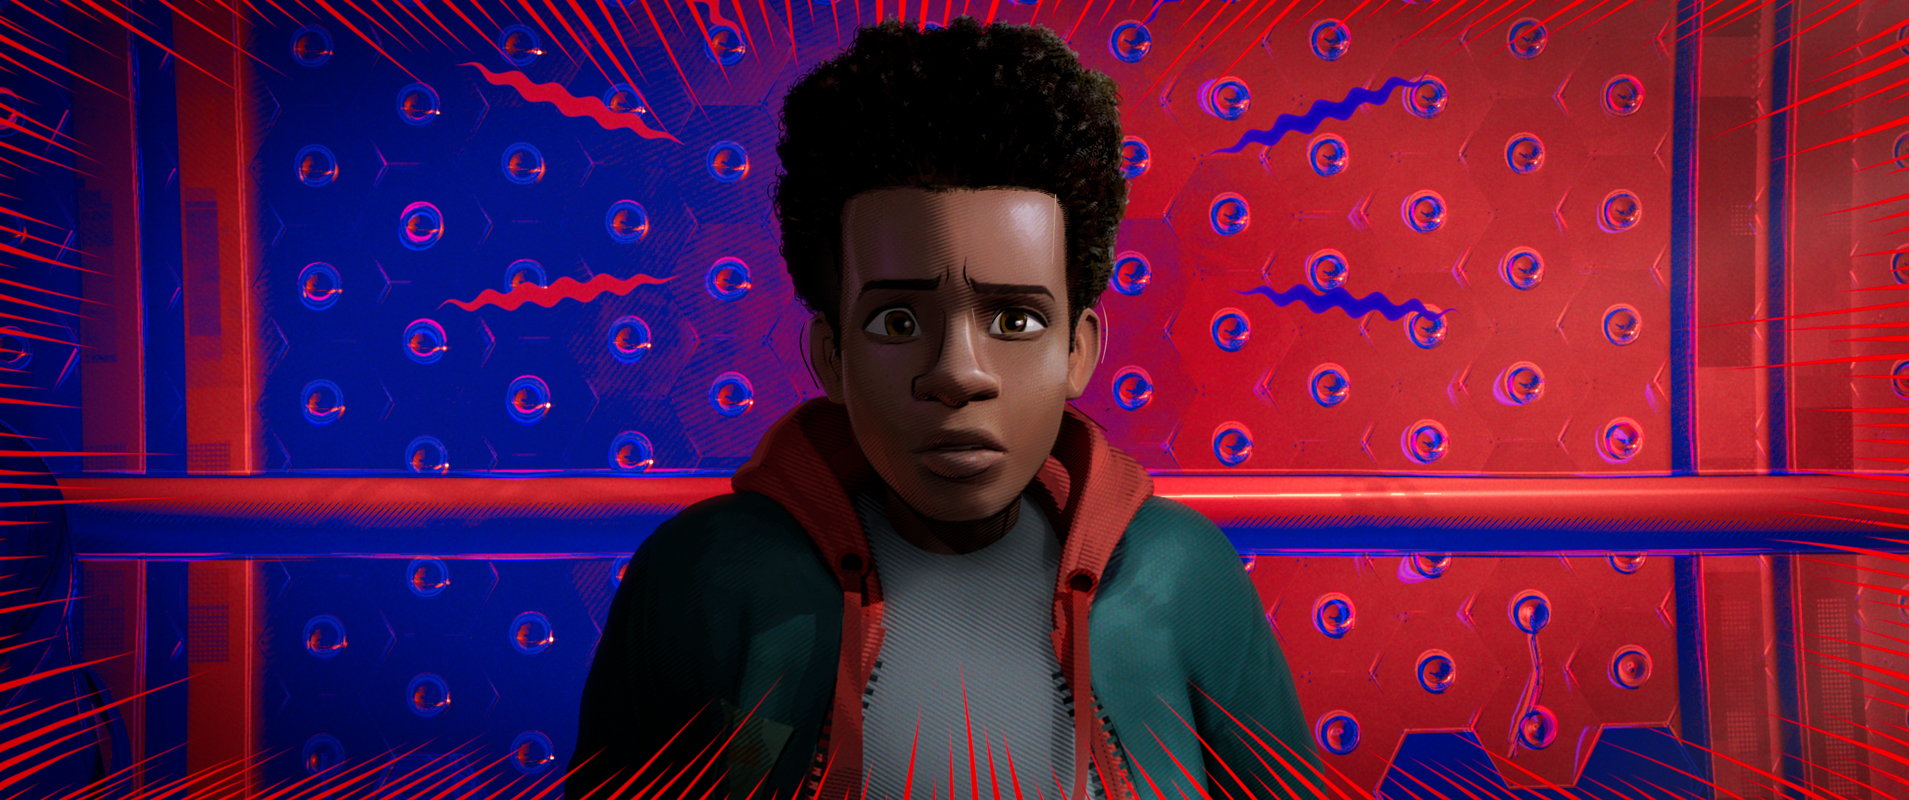 ART OF THE CUT on editing Spider-Man: Into the Spider-Verse 8